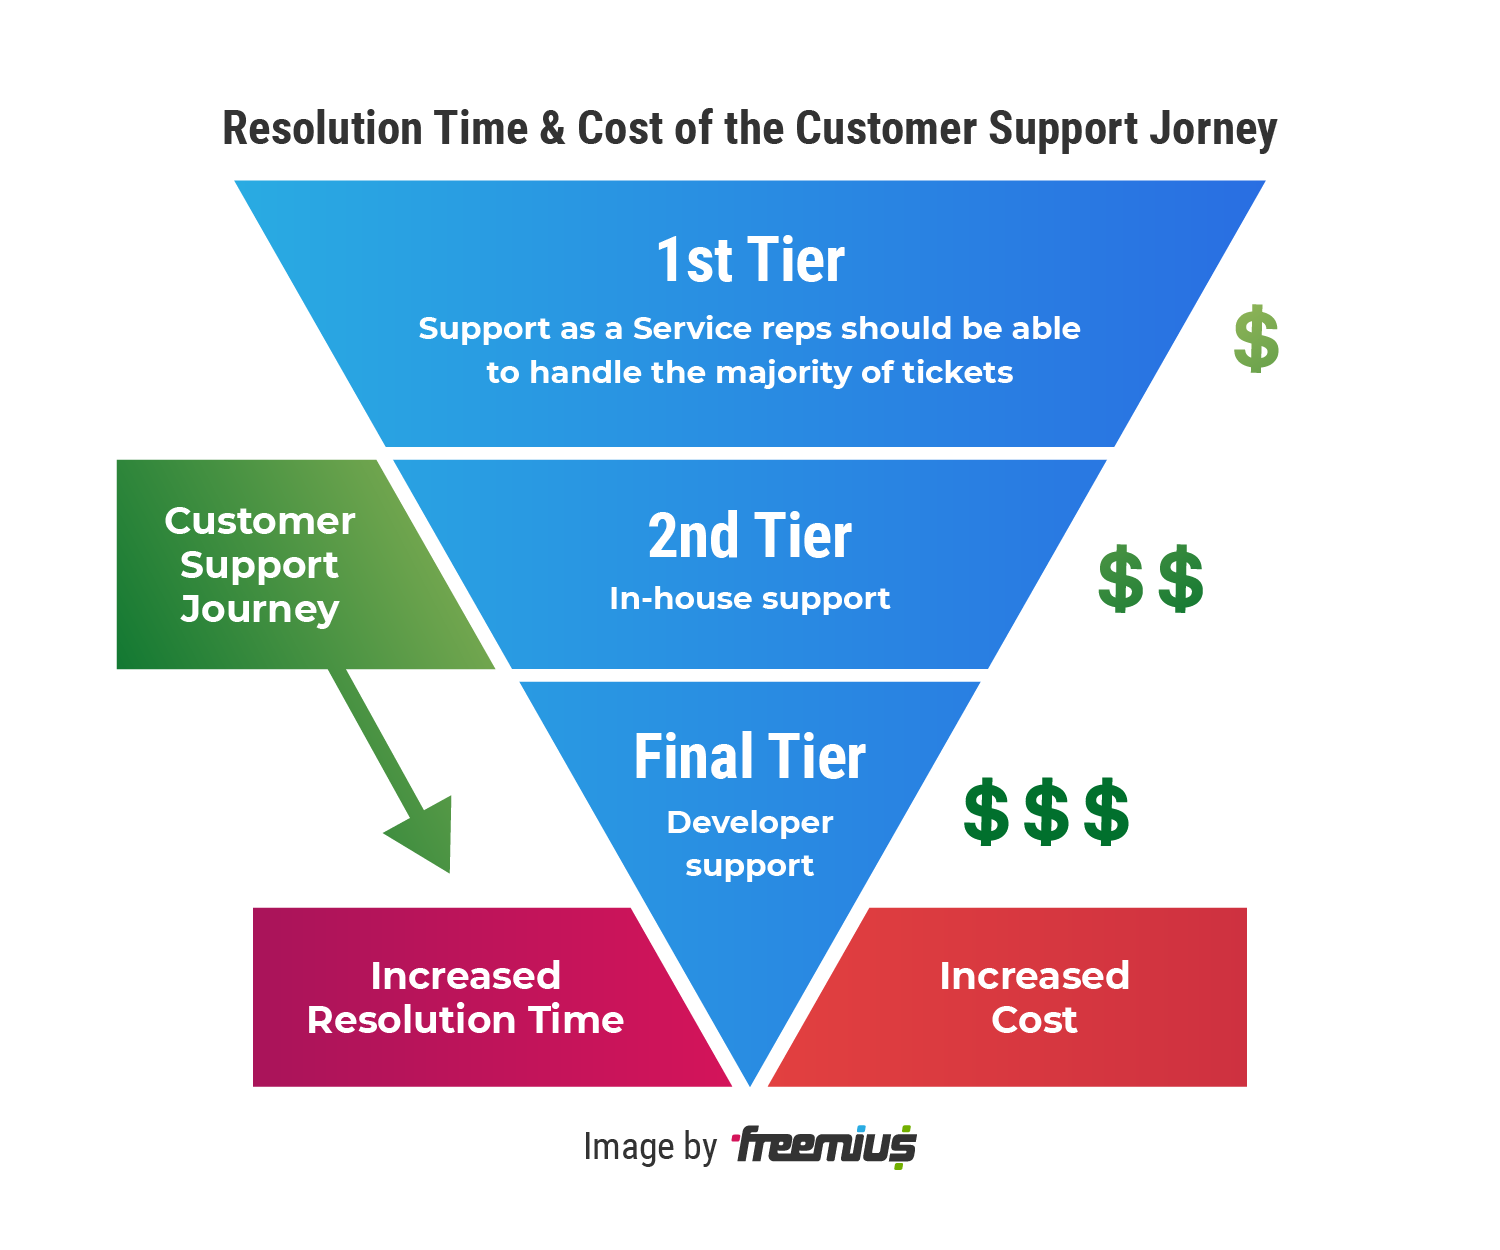 Resolution Time & Cost of the Customer Support Journey